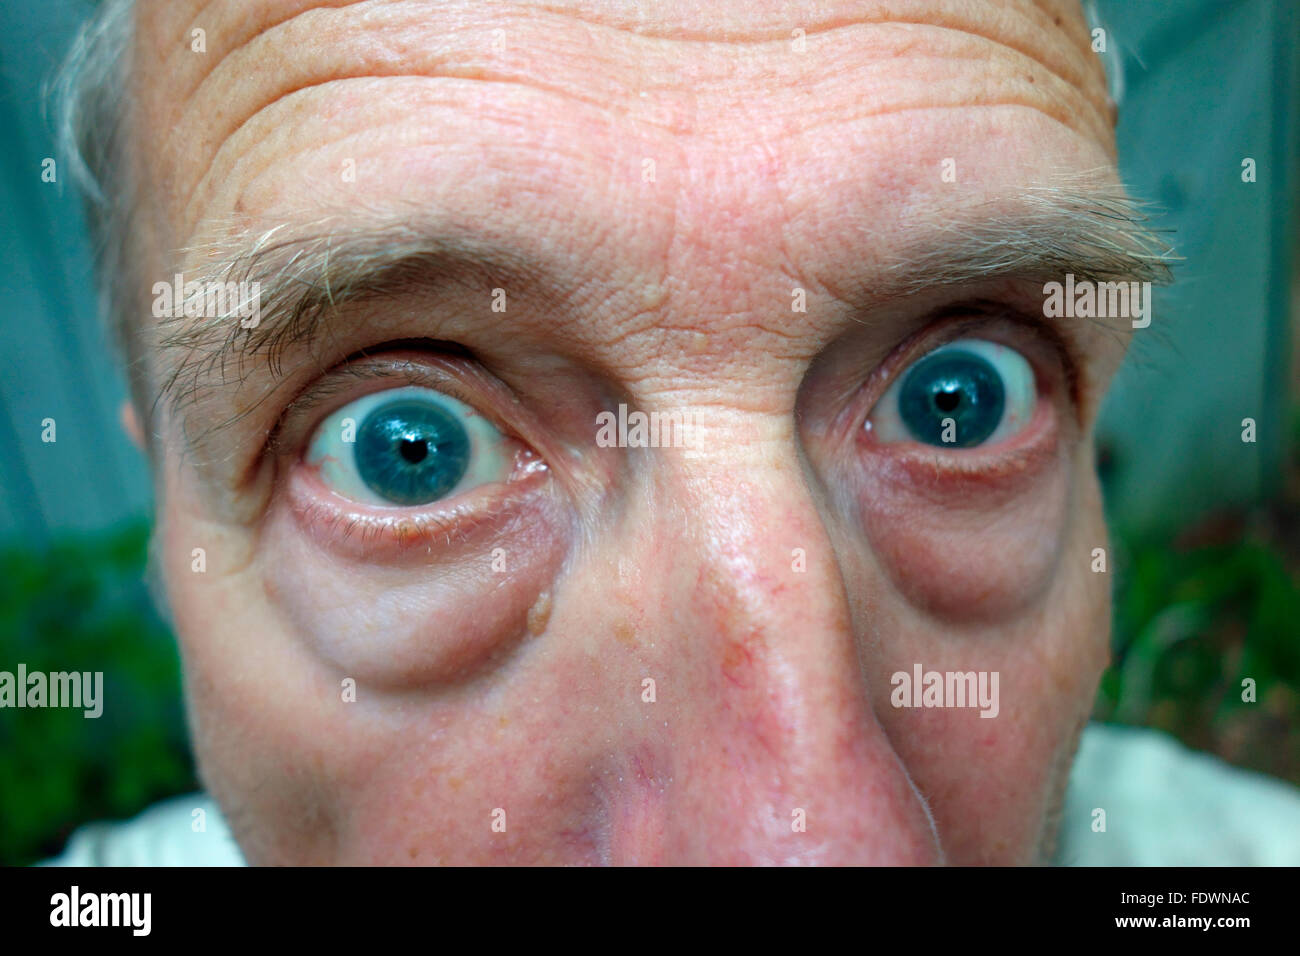 A funny man's face with bulging eyes - Stock Image